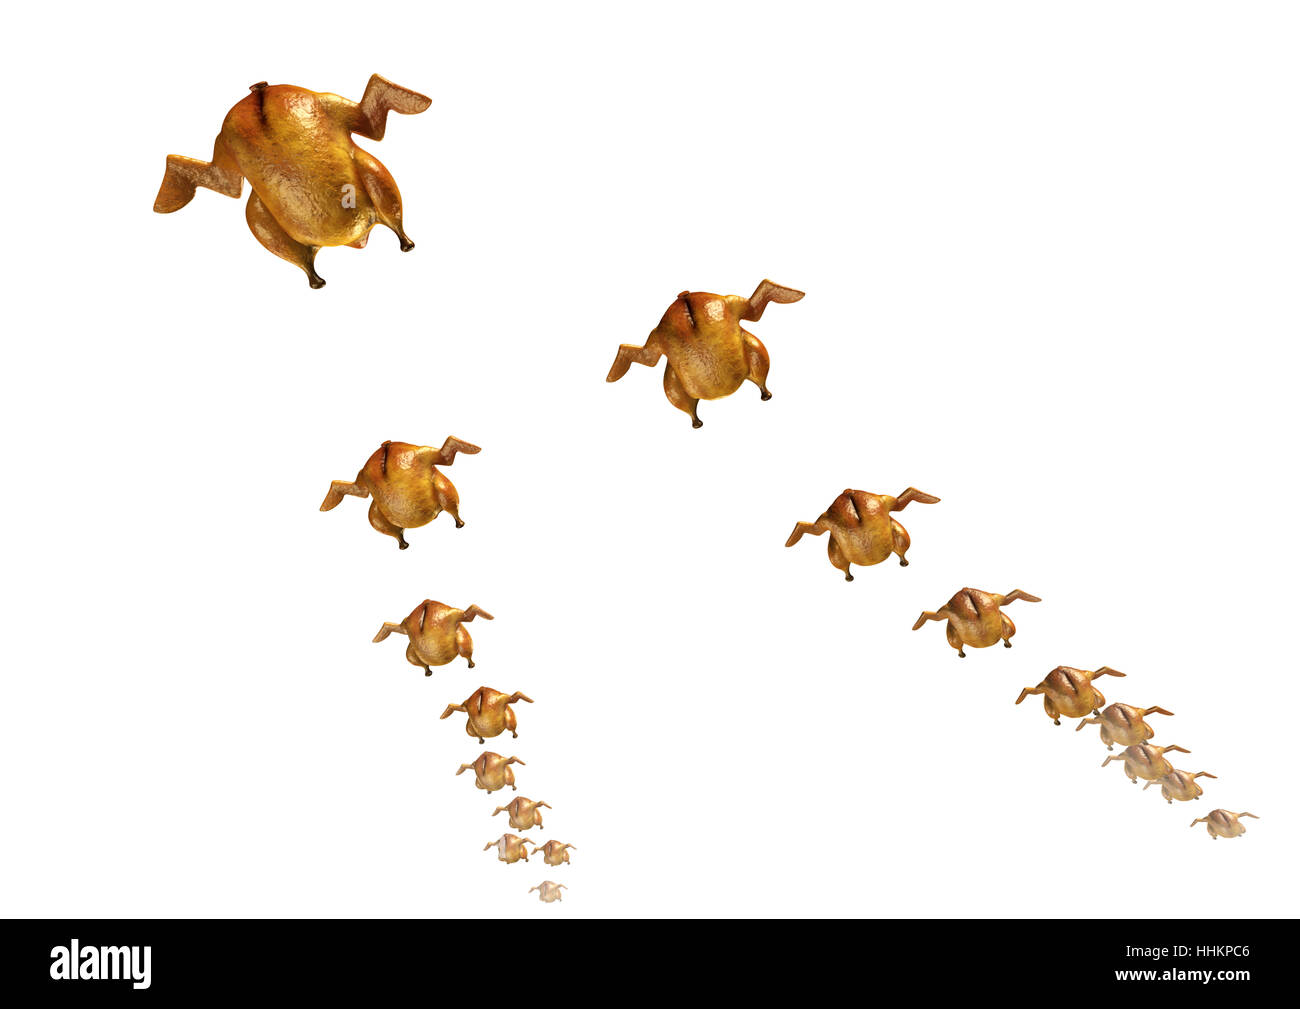 Migration Of Roasted Chickens - Stock Image